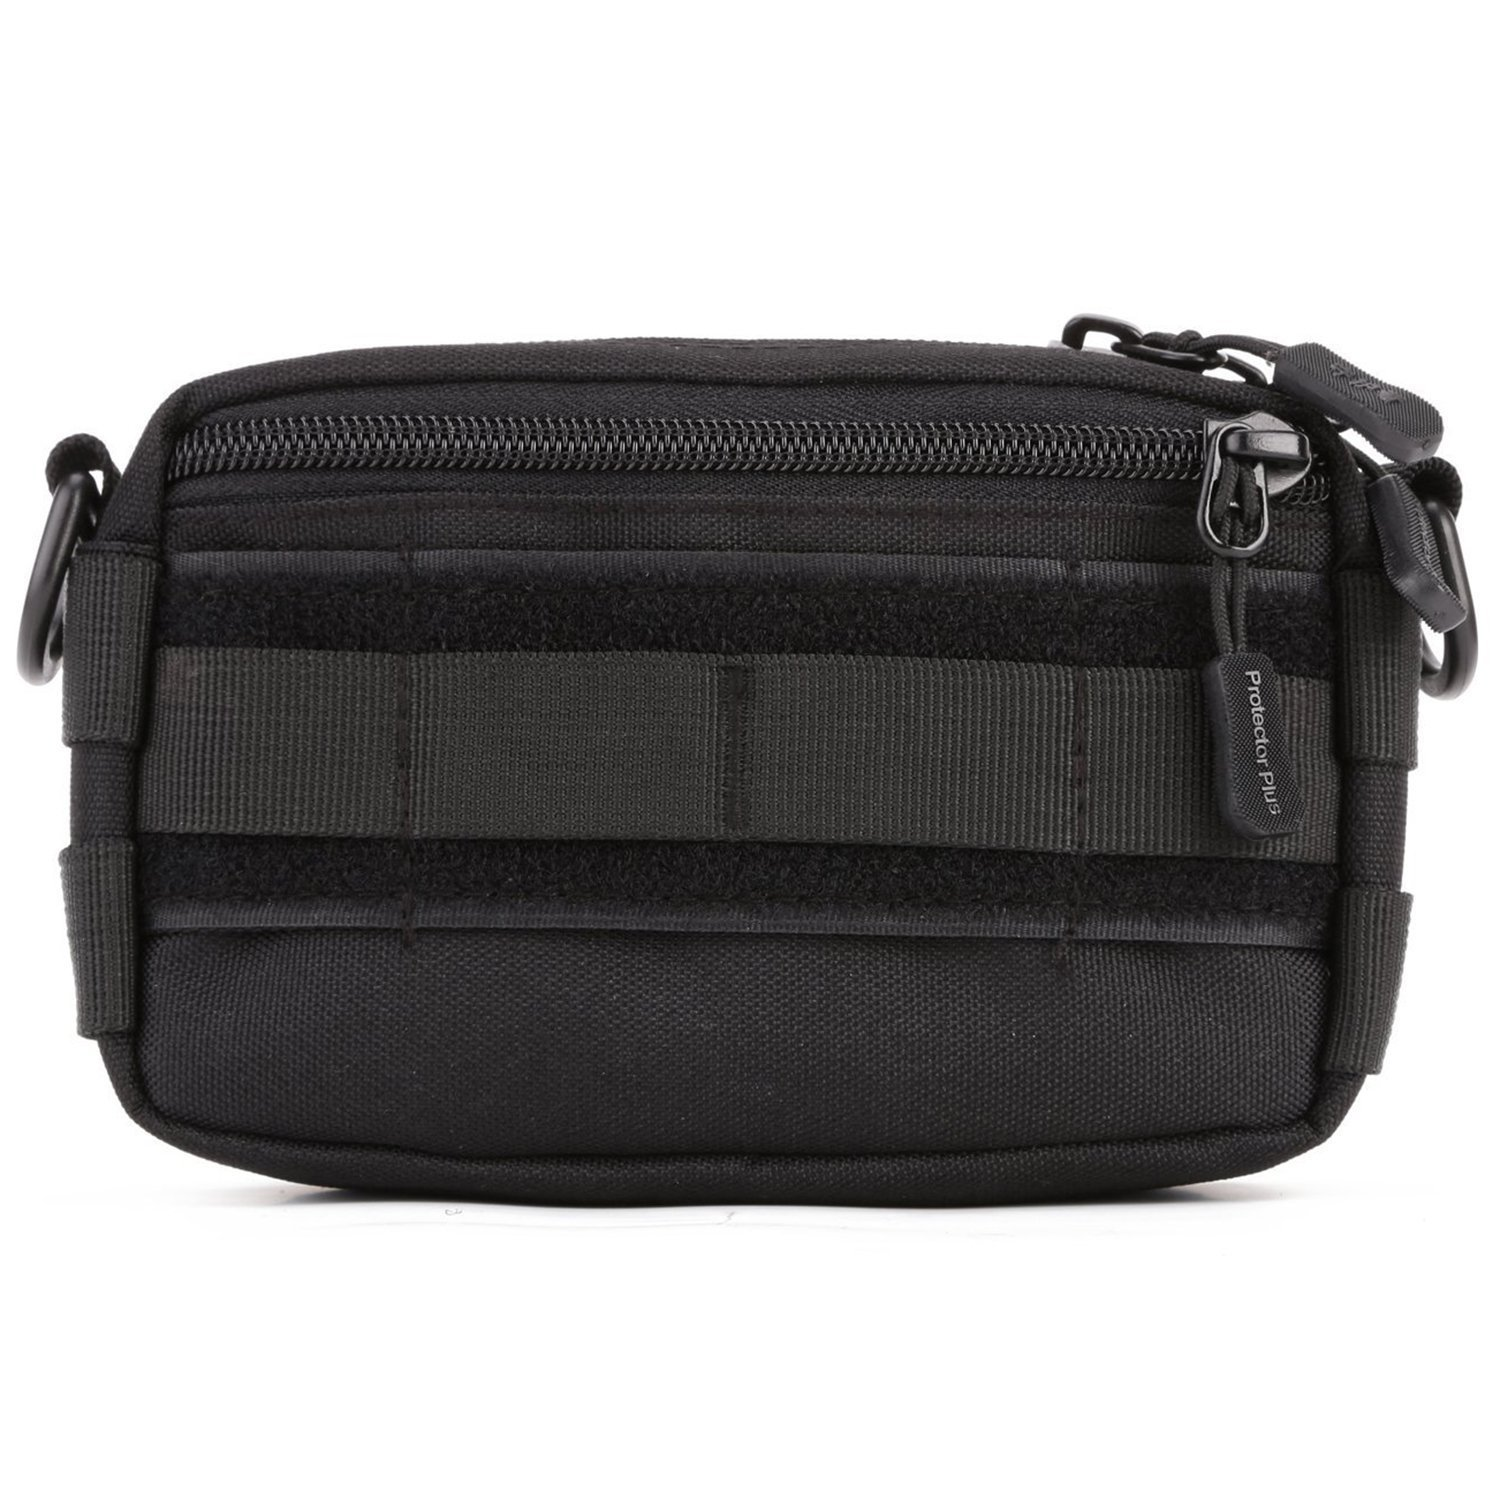 19101b0ed46 Get Quotations · SUNVP Tactical Utility MOLLE Pouch Outdoor Casual Messenger  Bag Military Waist Belt Bag Medical First Aid